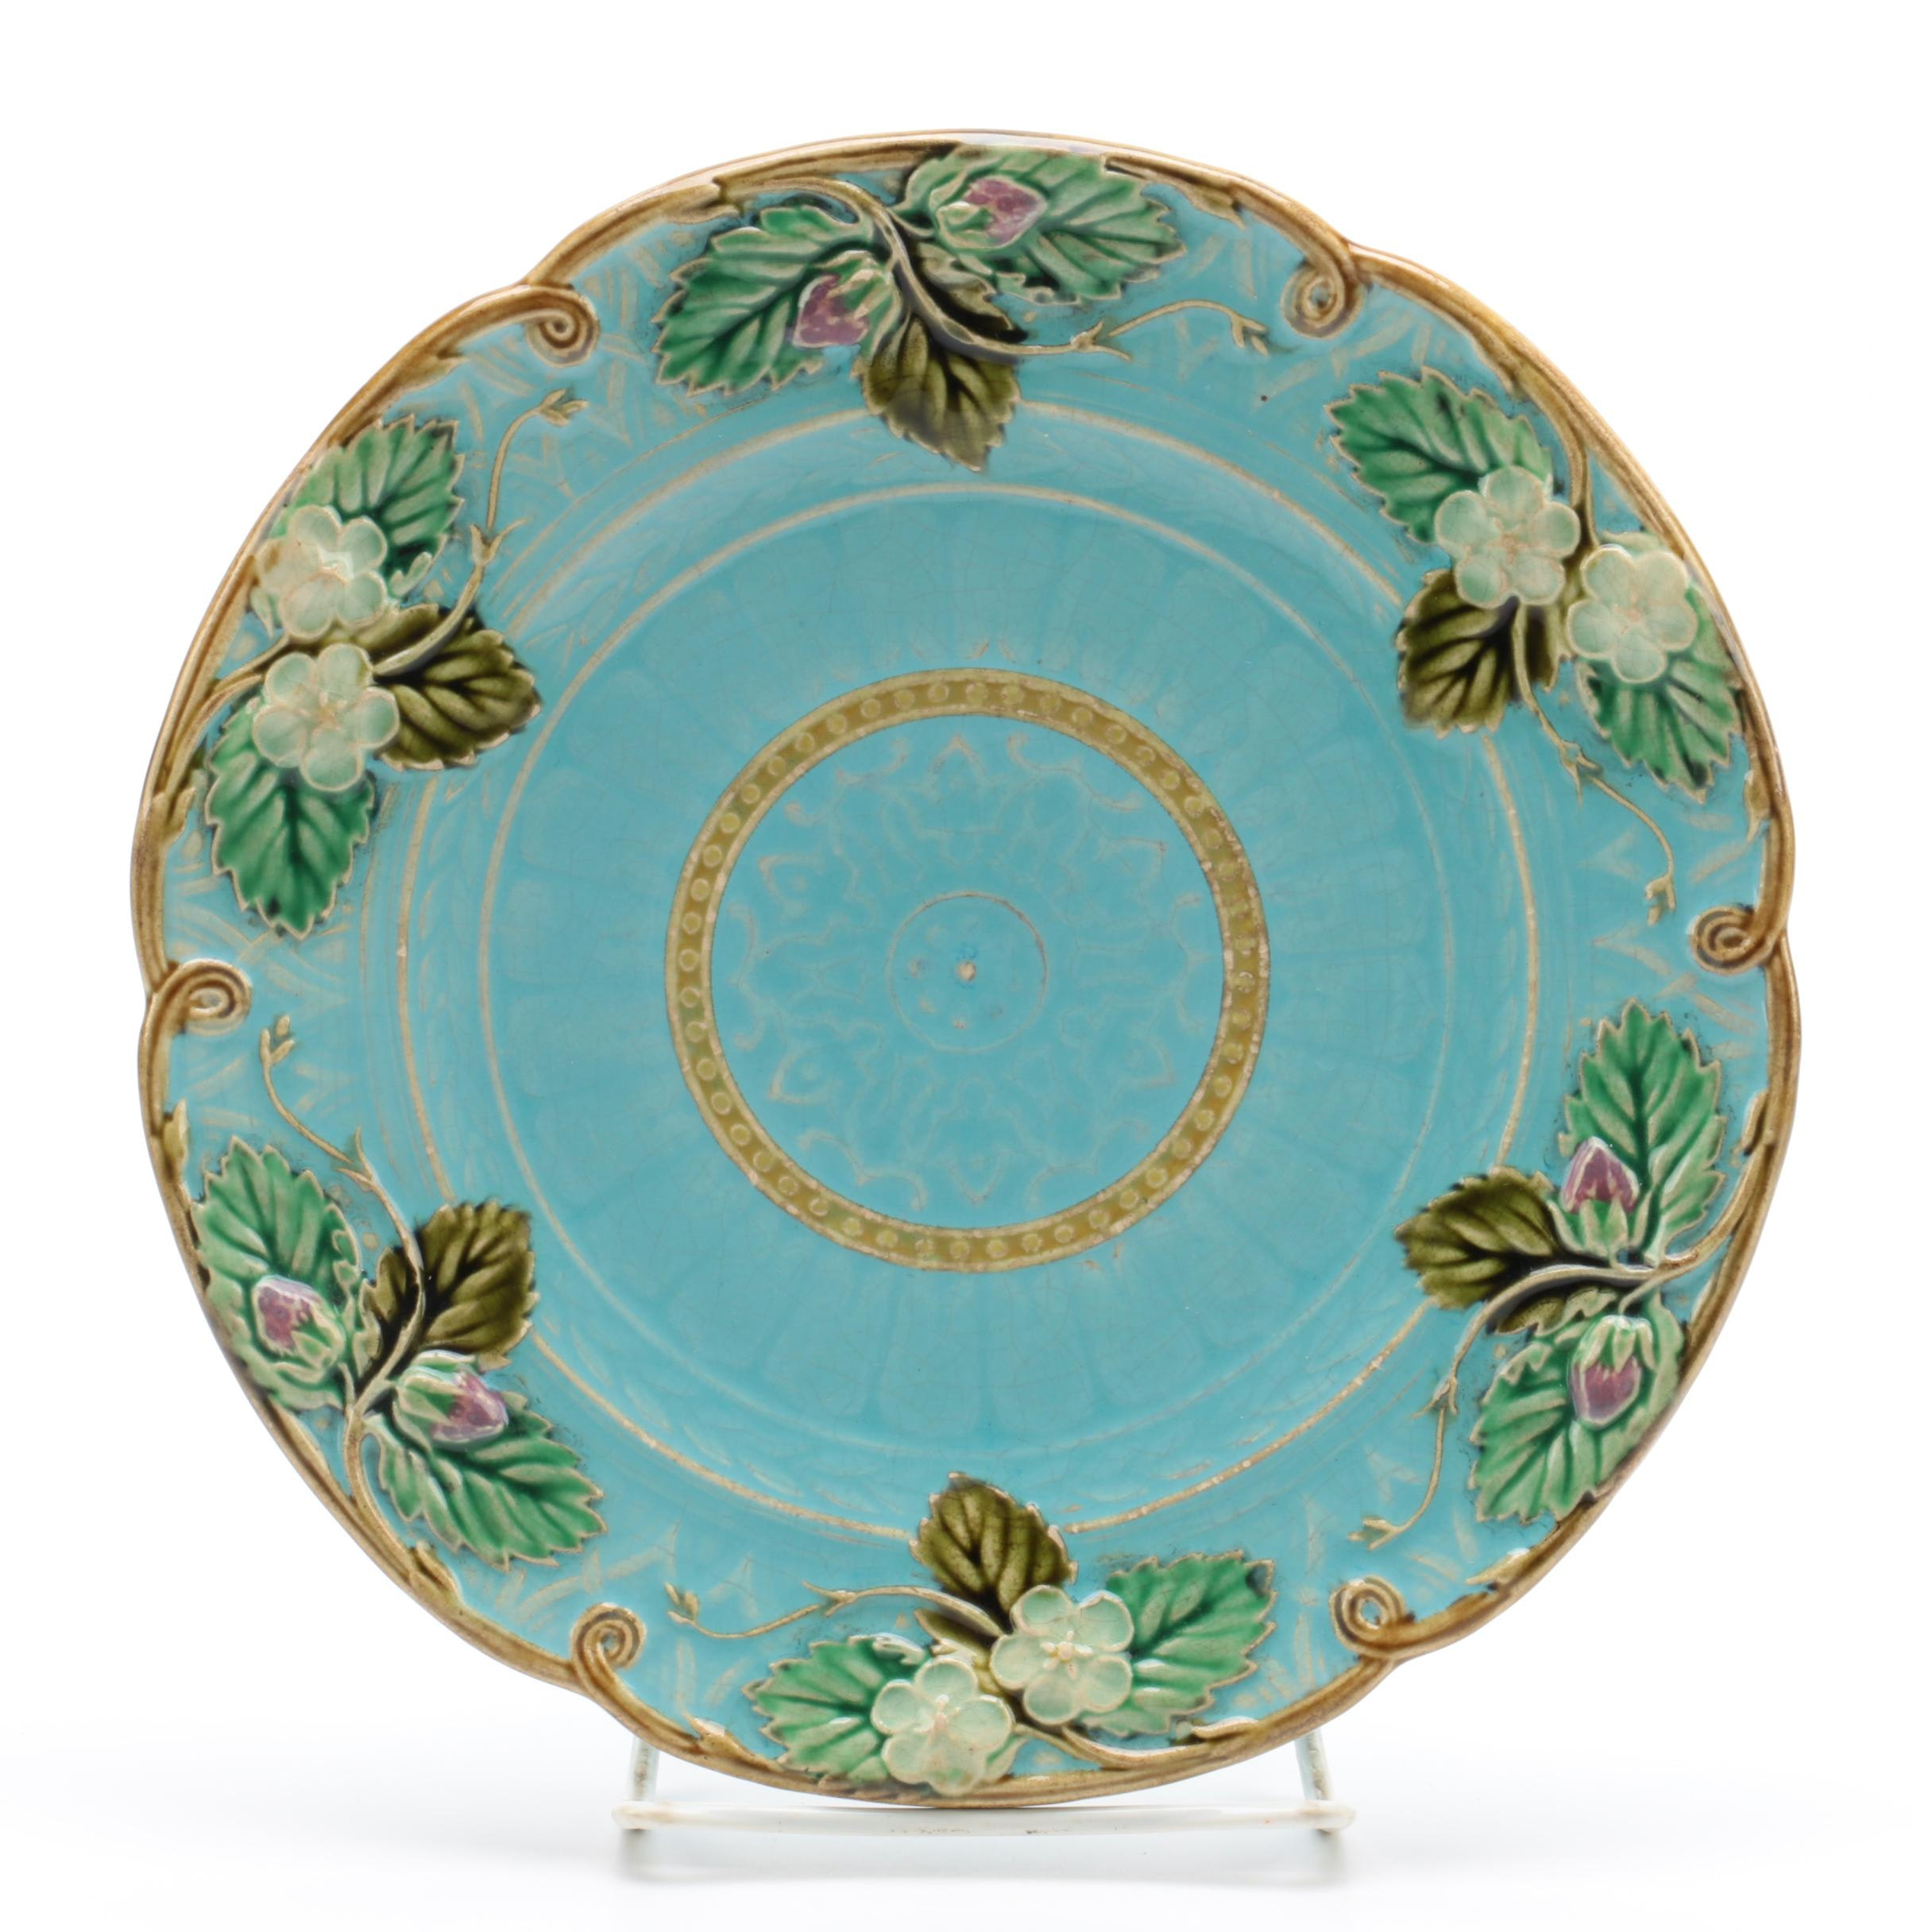 Late 19th Century Sarreguemines French Majolica Plate